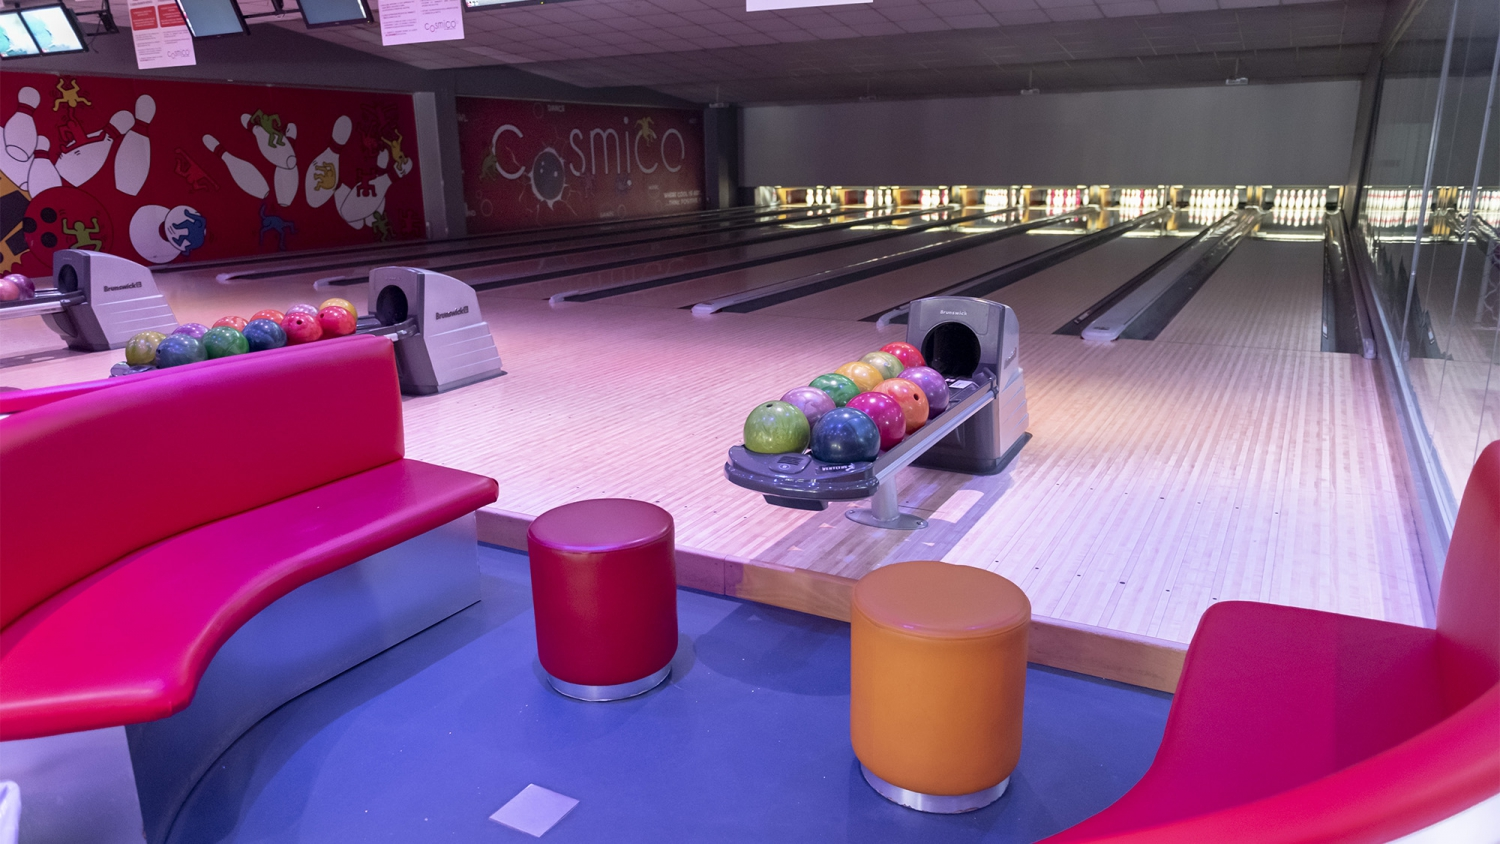 Cosmico Bowling